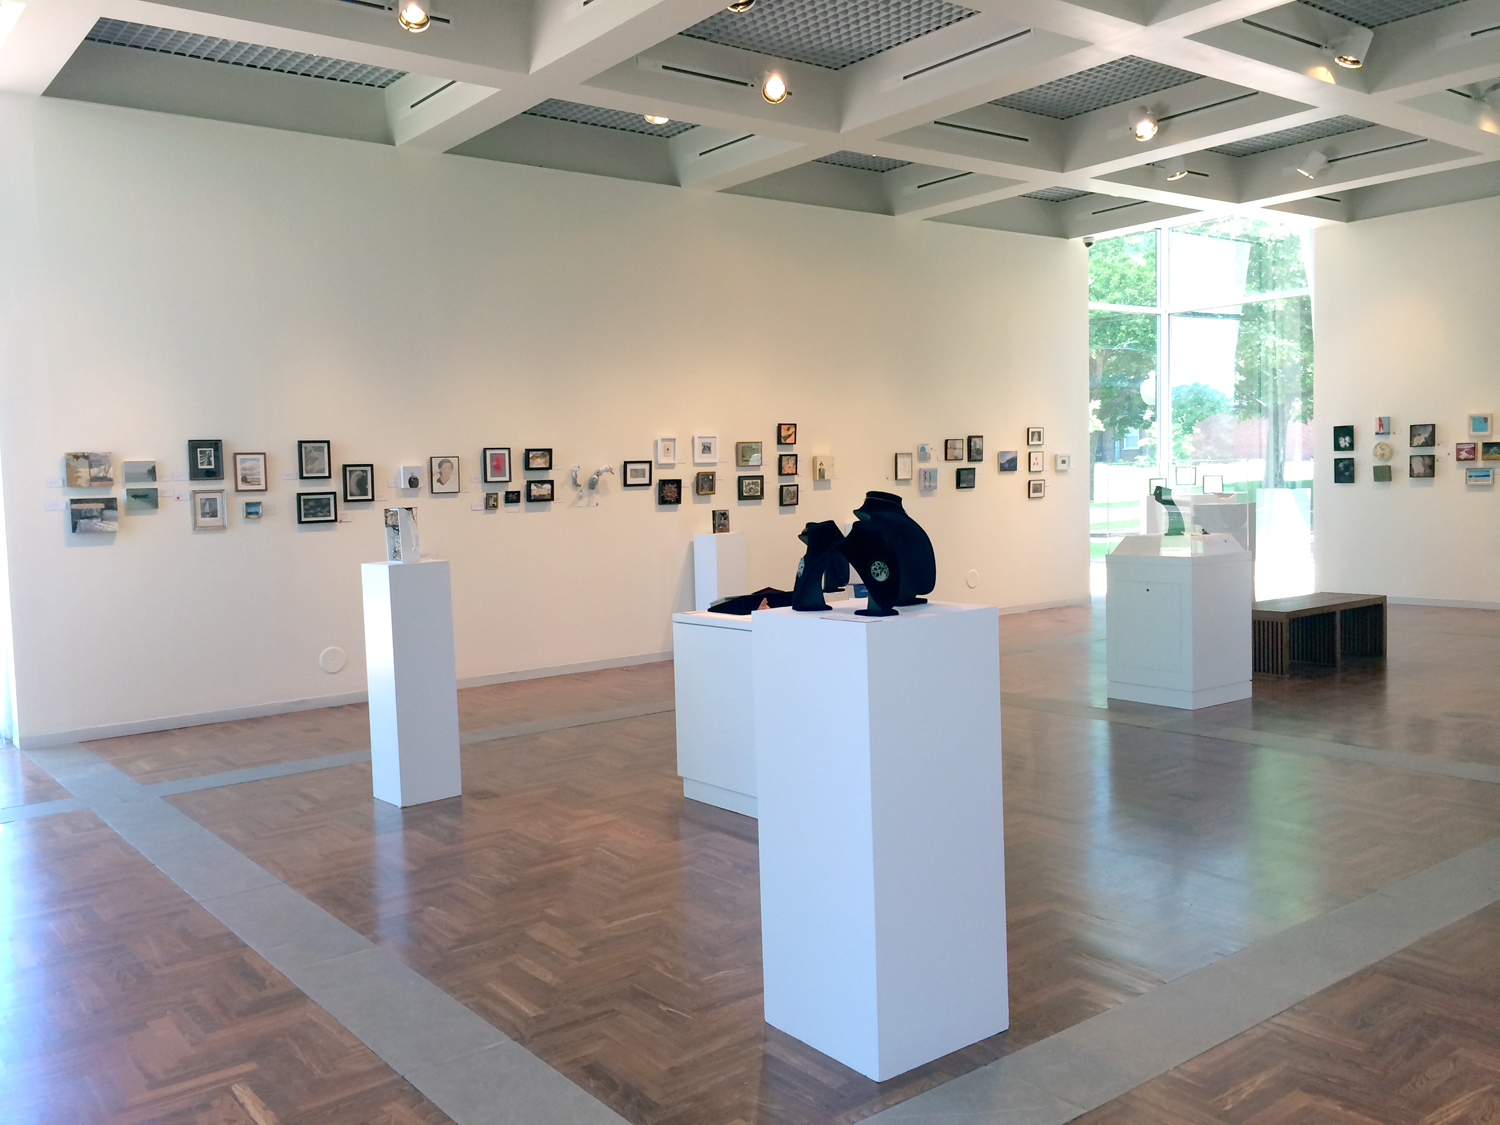 The Mitchell Gallery: less is more, small works in a great space